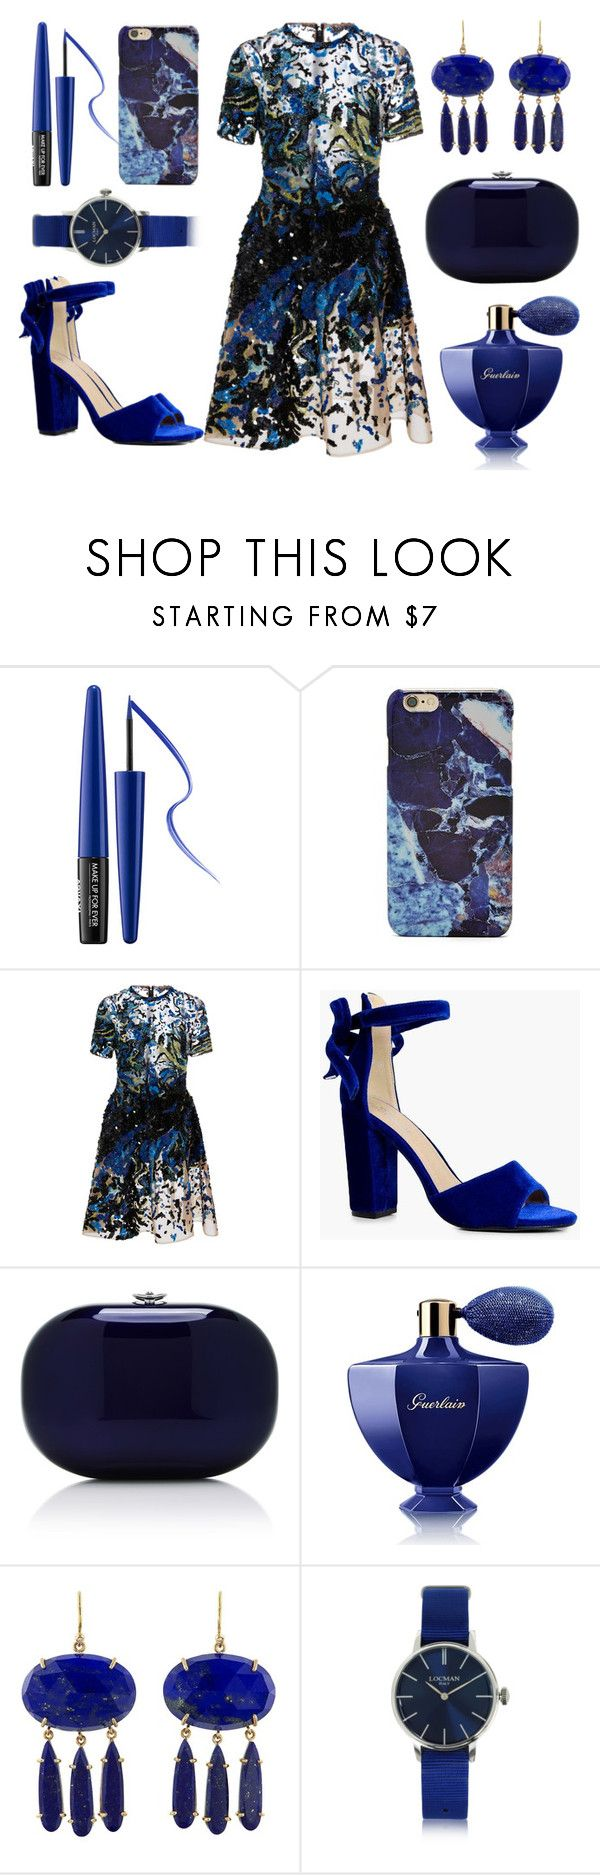 """""""что-то синее"""" by lindaedwardss ❤ liked on Polyvore featuring MAKE UP FOR EVER, Forever 21, Elie Saab, Boohoo, Jeffrey Levinson, Guerlain, Irene Neuwirth and Locman"""